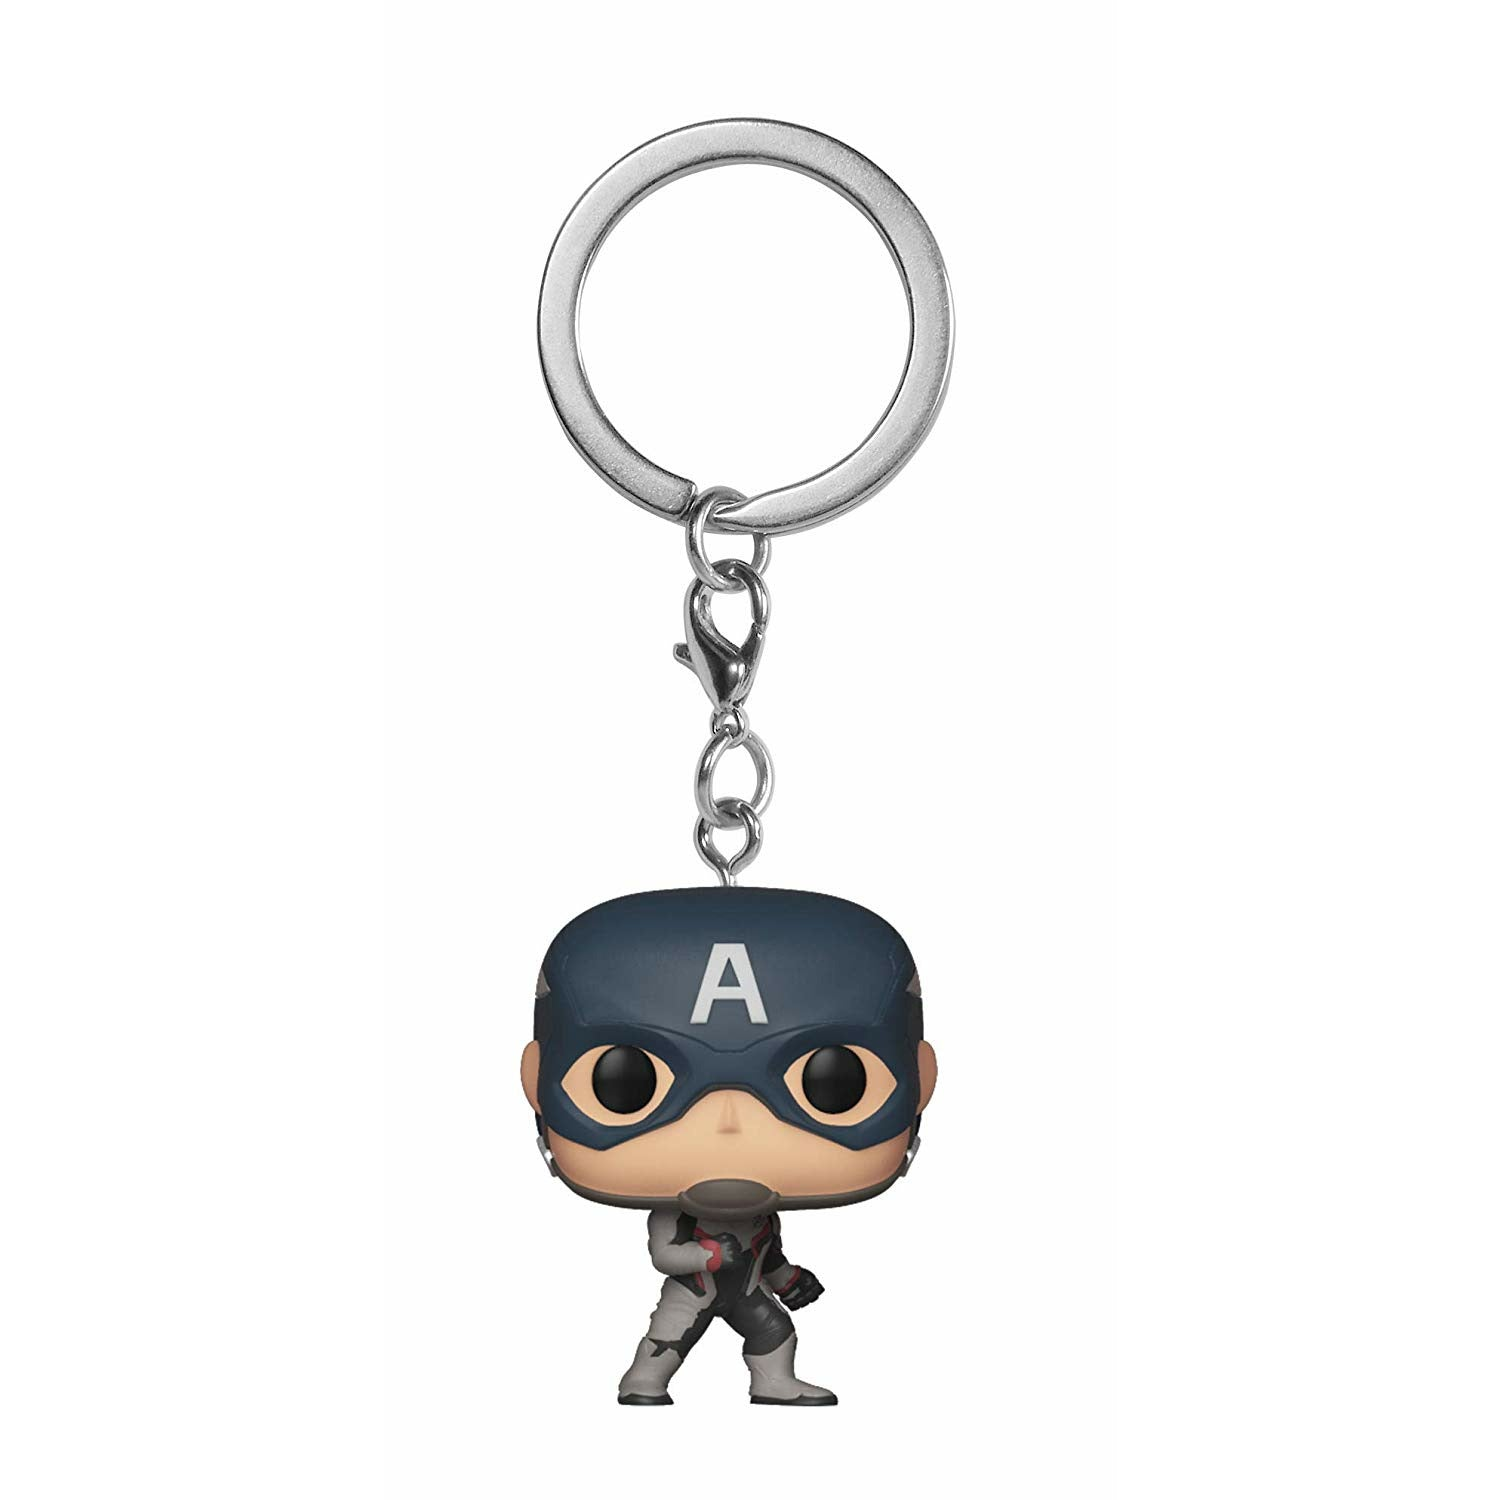 Marvel Avengers: Endgame Captain America Bobblehead Pocket Pop! Keychain Figure